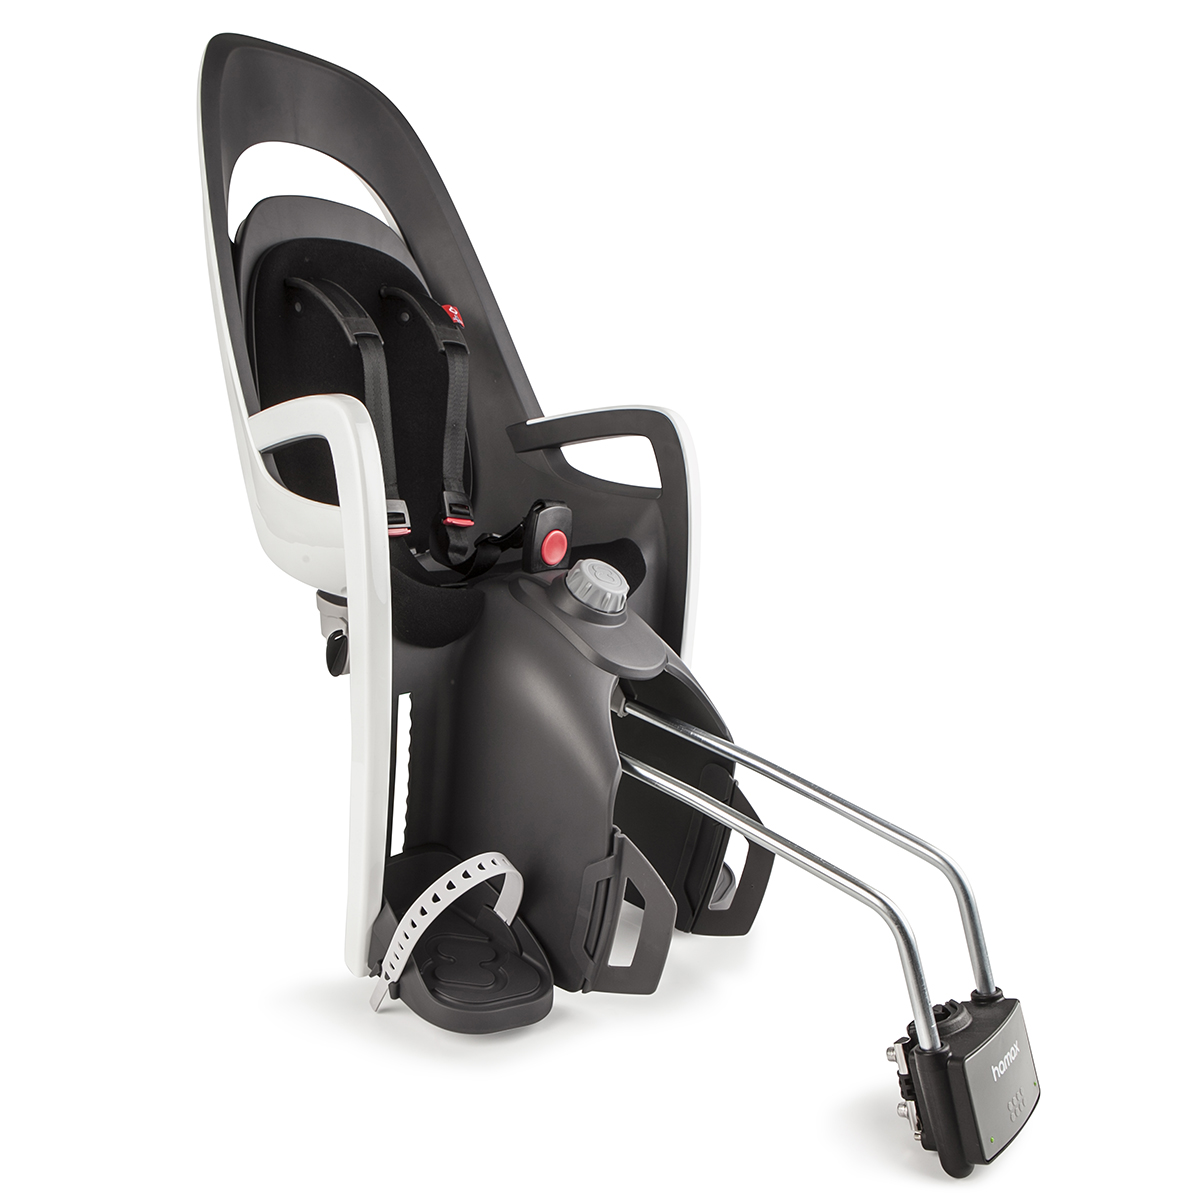 Baby chair on bike - Caresswith